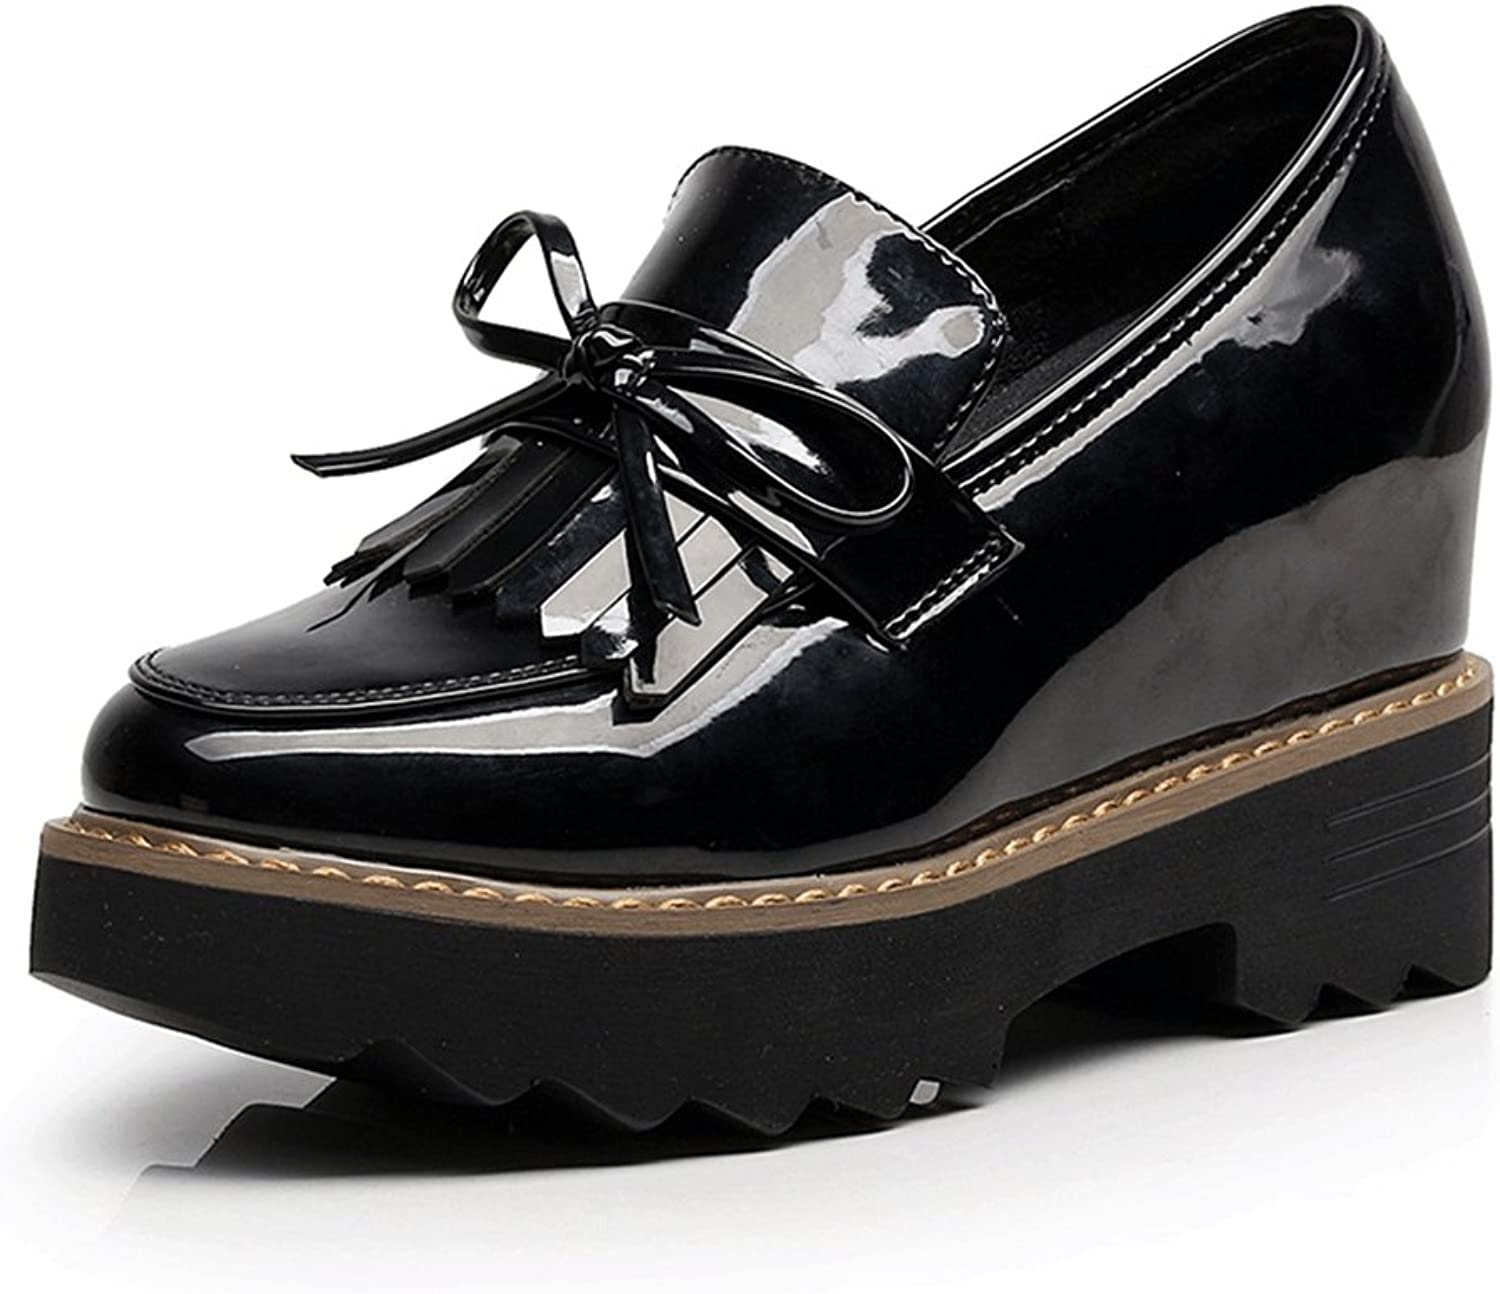 CYBLING Fashion Women Black Slip On Patent Leather Oxford shoes for Walking